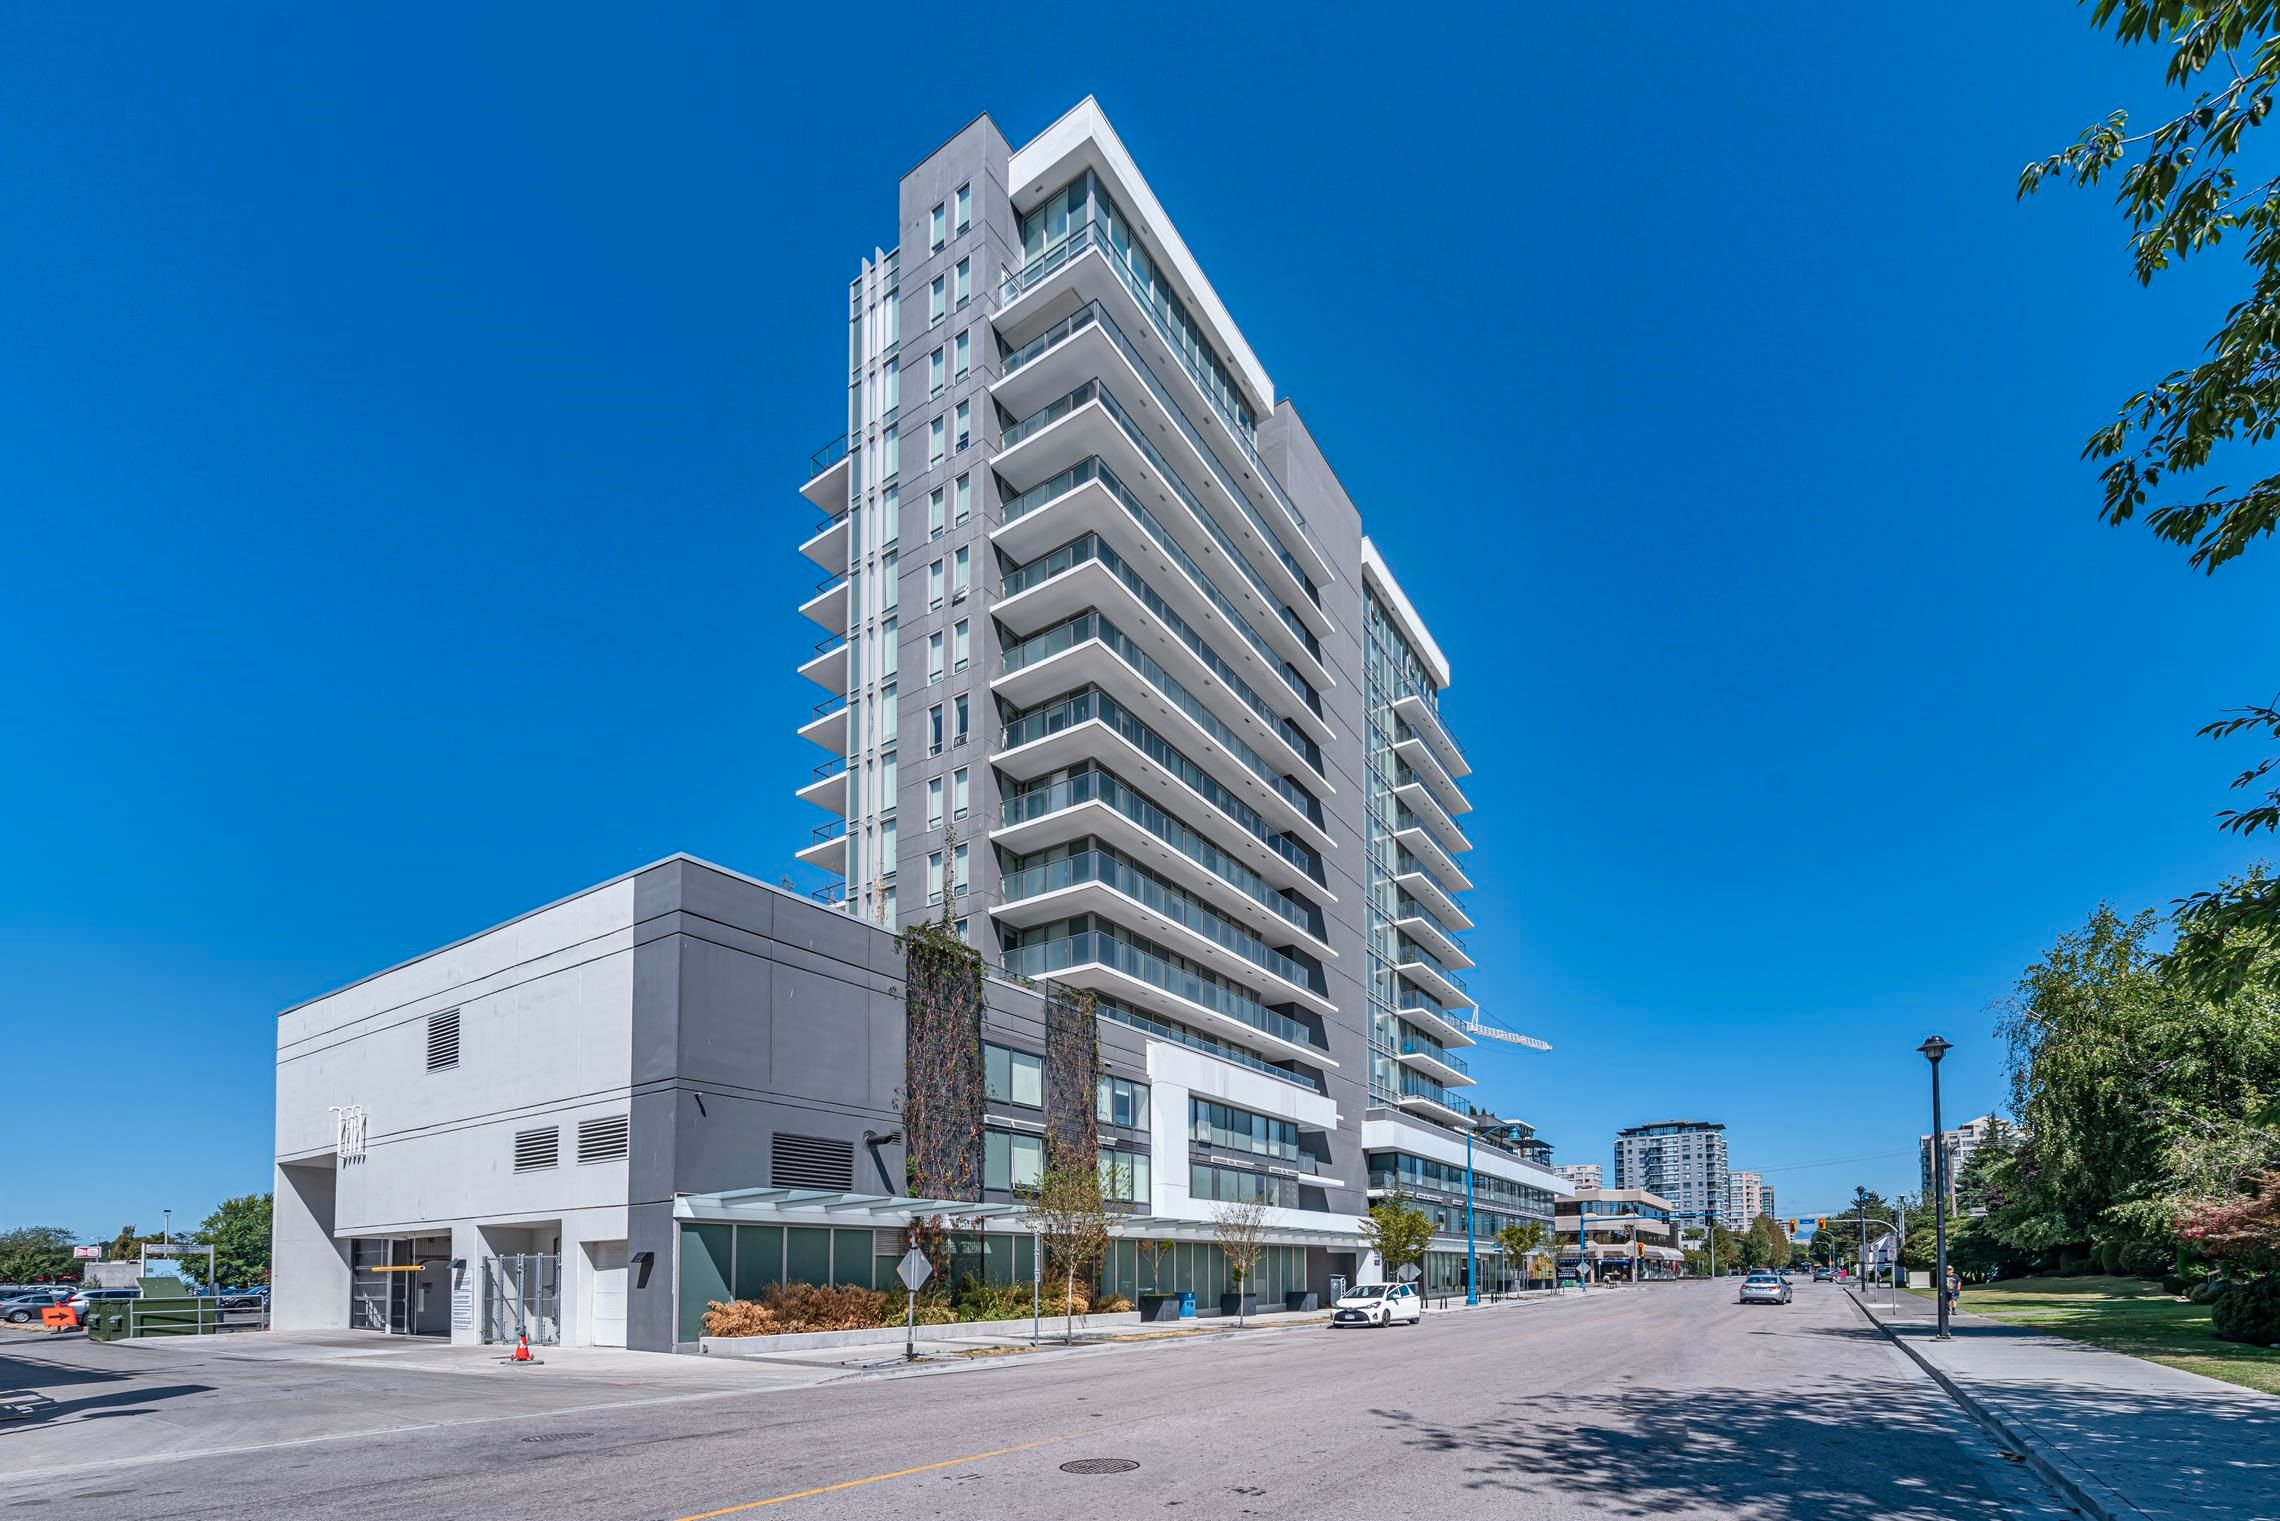 """Main Photo: 1102 6533 BUSWELL Street in Richmond: Brighouse Condo for sale in """"ELLE"""" : MLS®# R2612485"""